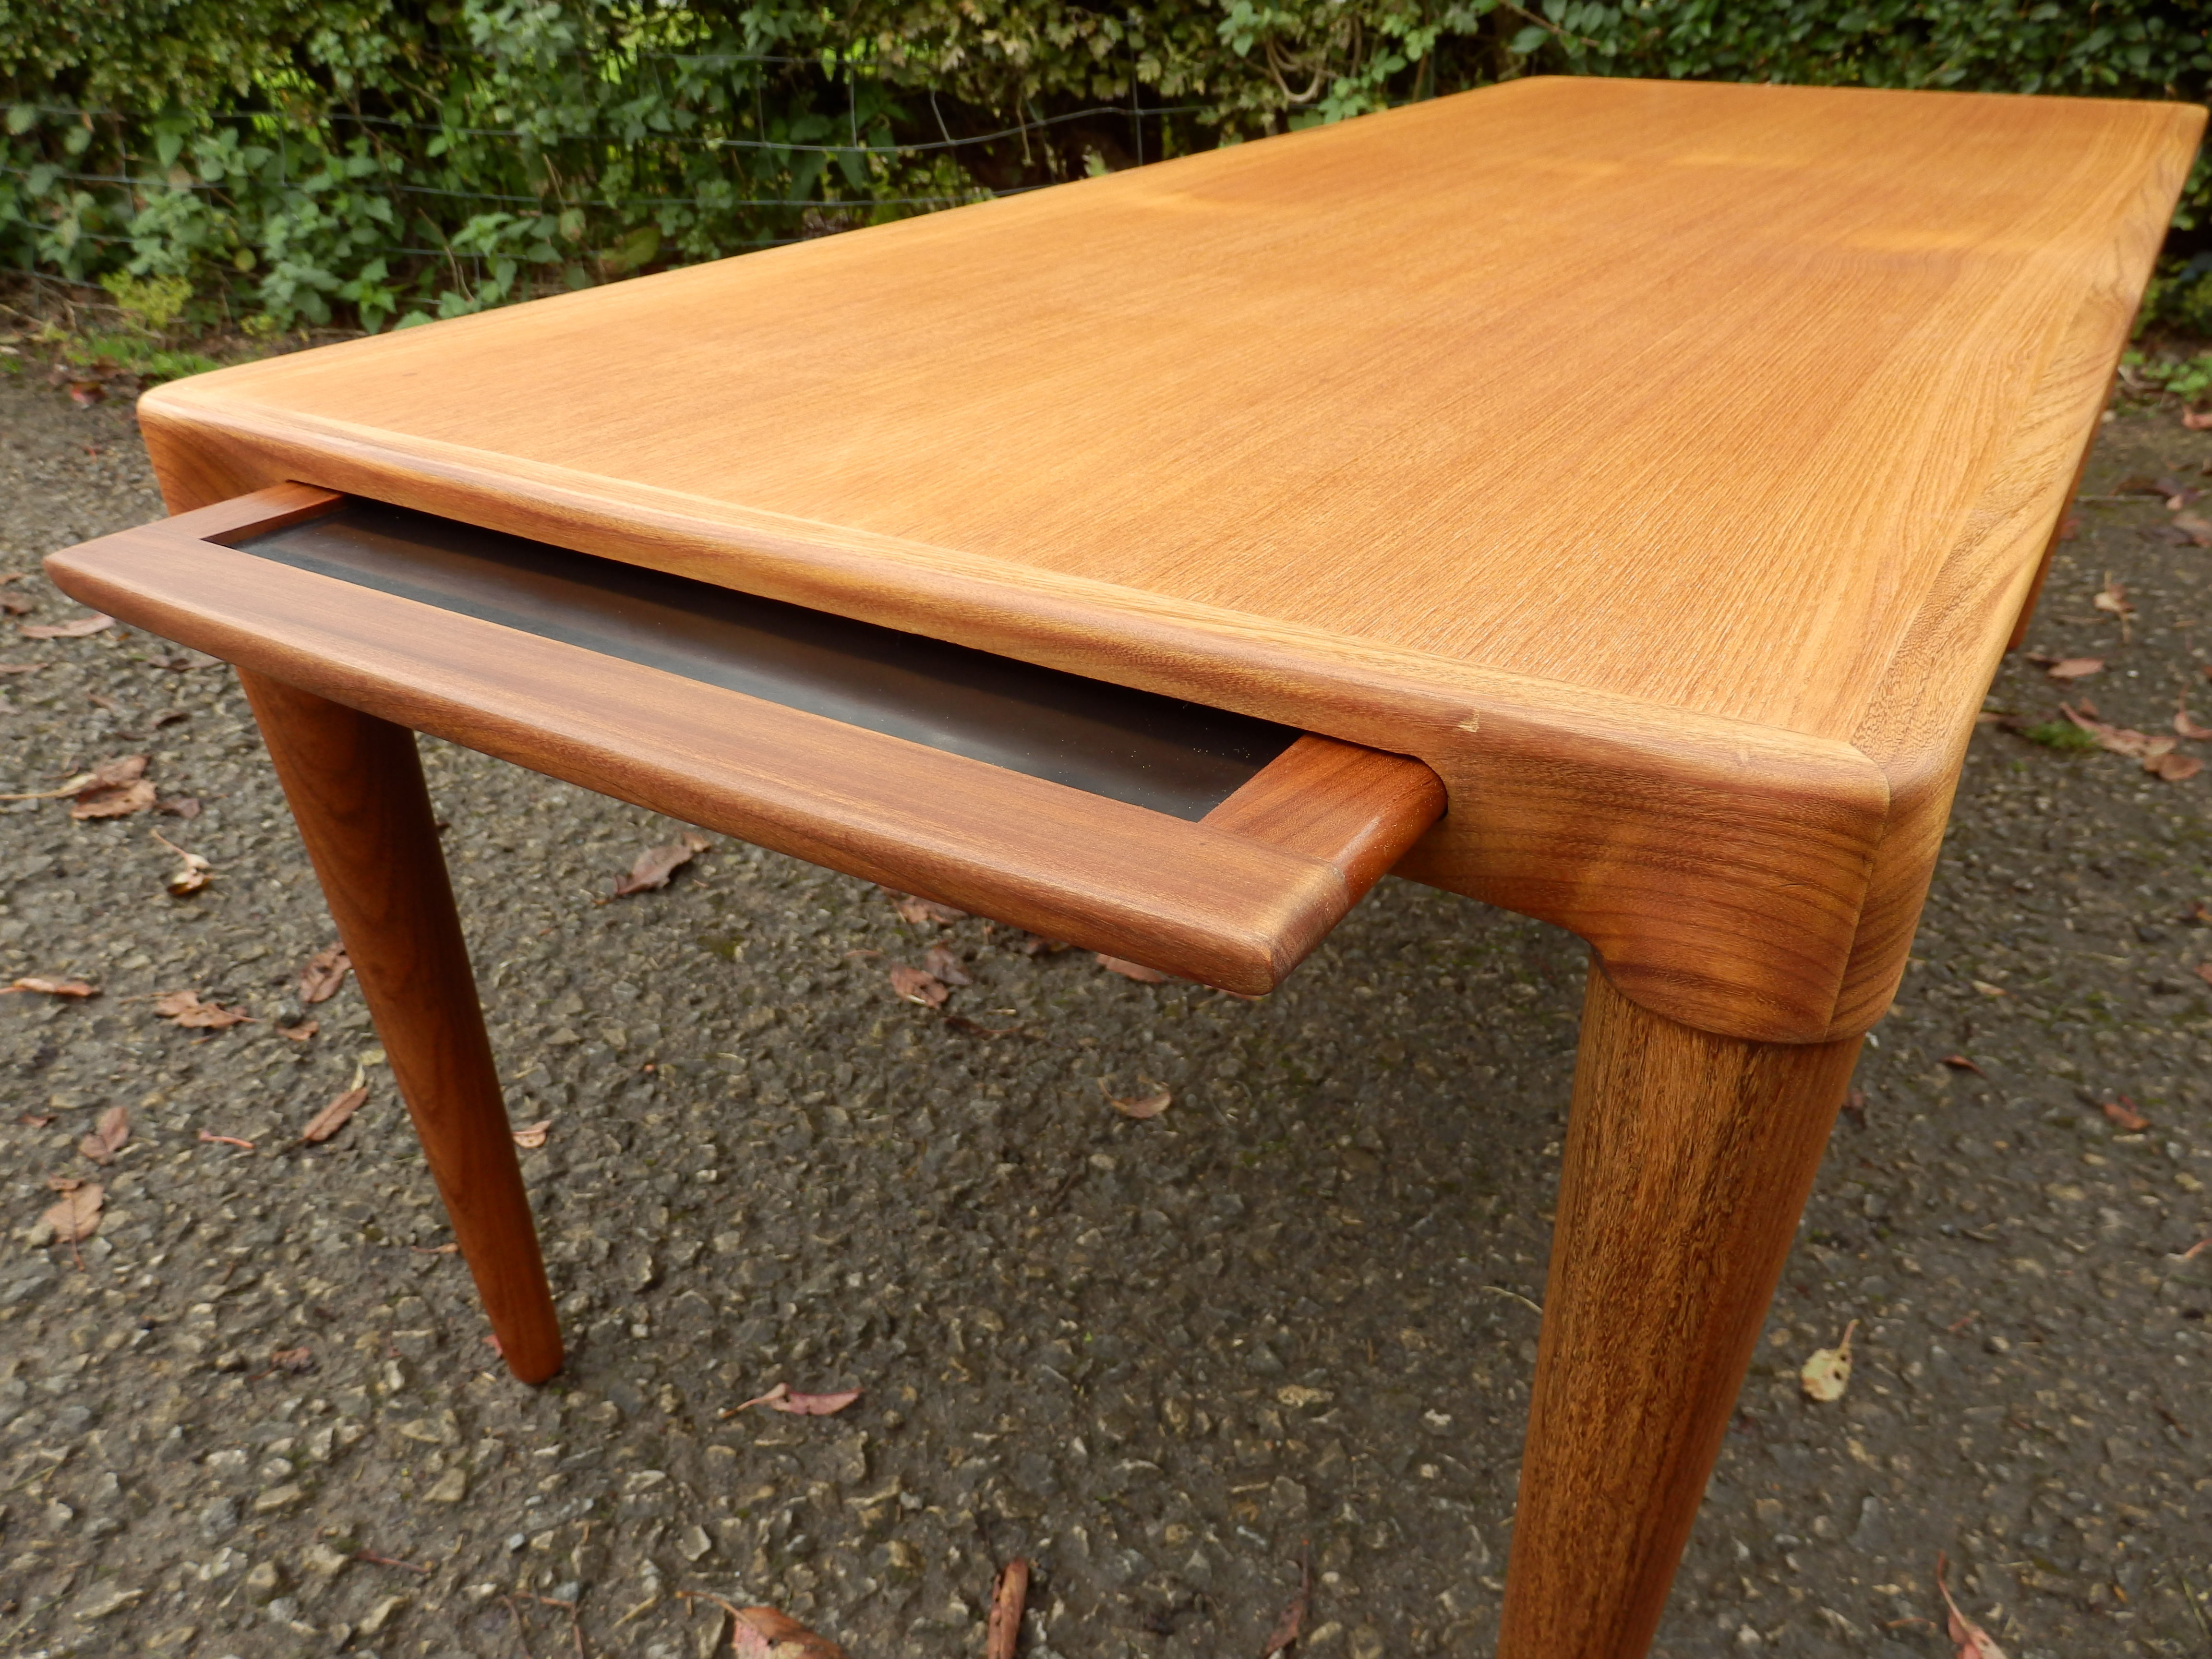 Very Rare Large Teak Coffee Table With Slide Out Drinks Tray Intended For Well Liked Large Teak Coffee Tables (Gallery 11 of 20)